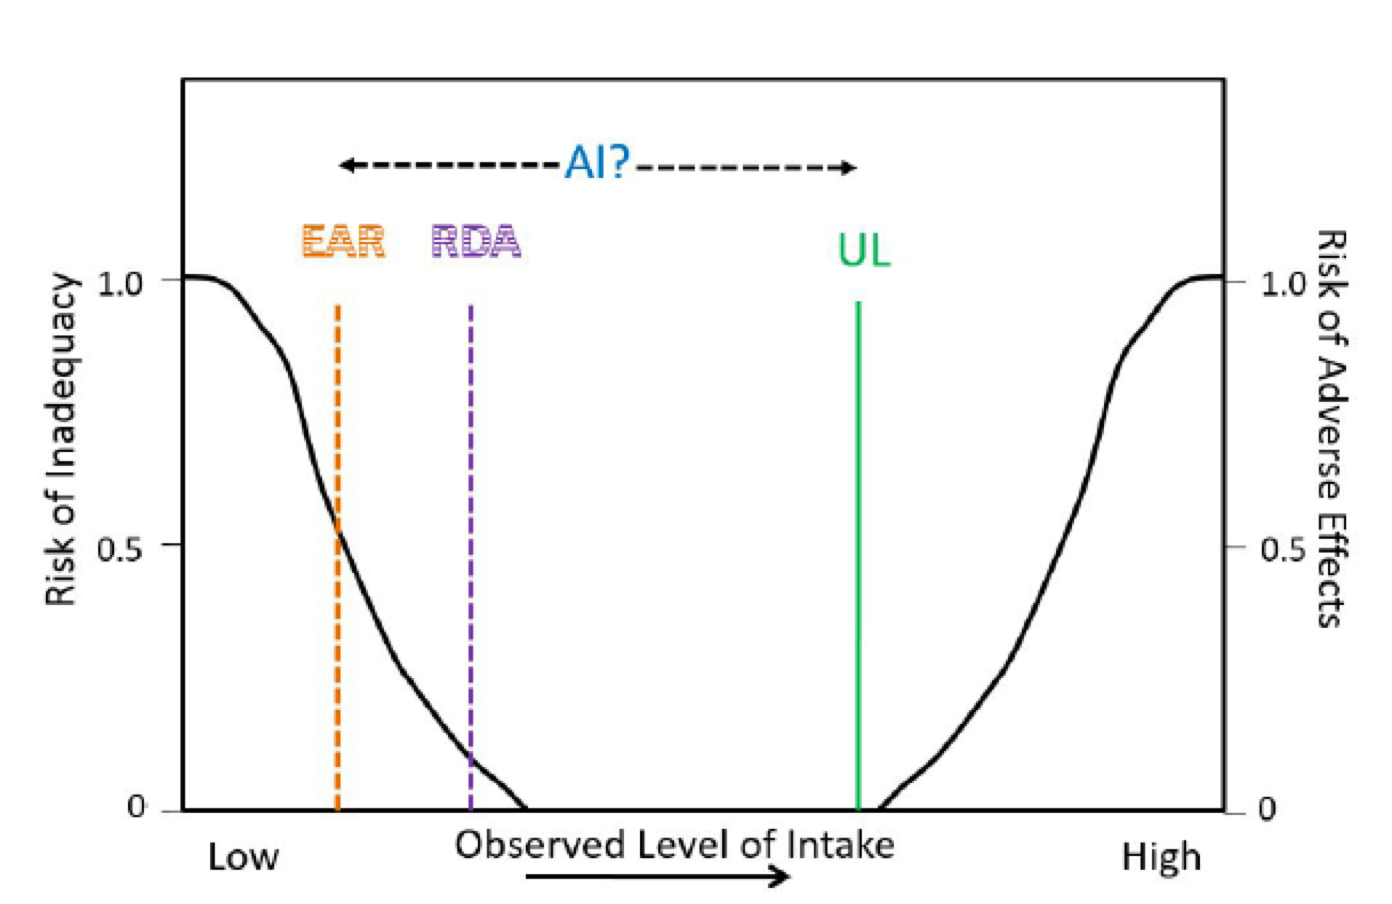 "The image is a line graph, with ""observed level of intake"" on the x-axis; ""risk of inadequacy"" on the left-hand y-axis; and ""risk of adverse effects"" on the right-hand y-axis. The graphed line is U-shaped, showing an increased risk of inadequacy at low levels of nutrient intake on the left side of the graph and increased risk of adverse effects at high levels of nutrient intake on the right side of the graph. Moving from left to right, lines are drawn representing the EAR (halfway on the slope of the left side of the U); RDA (at the base of the slope on the left side of the U); and UL (at the base of the slope on the right side of the U). The AI is shown as a range between the EAR and UL."